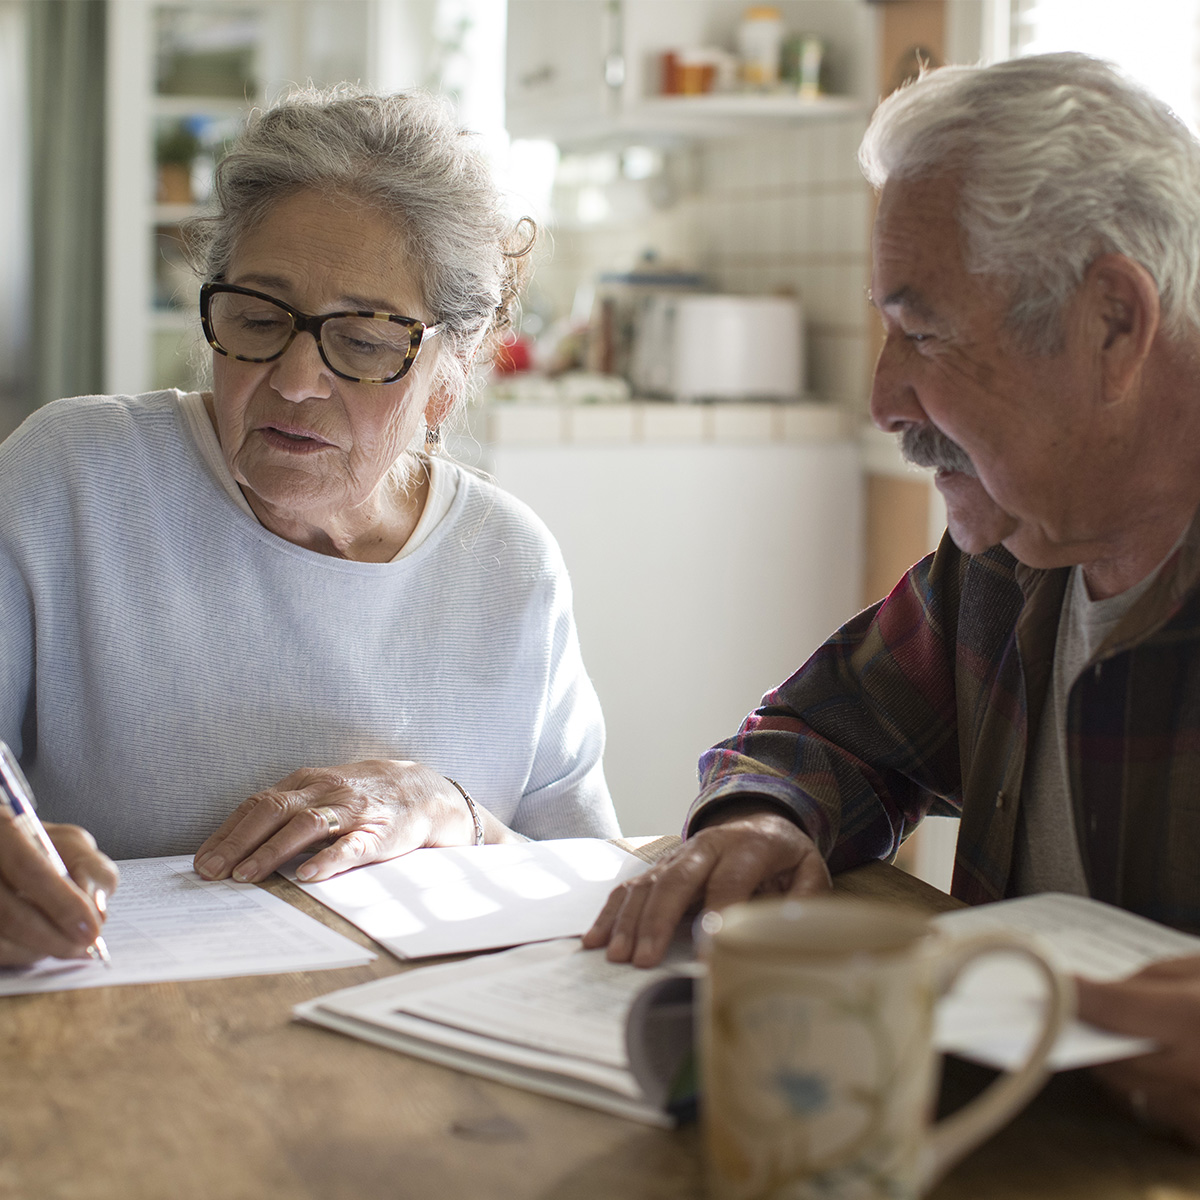 A caregiver helps a senior fill out paperwork